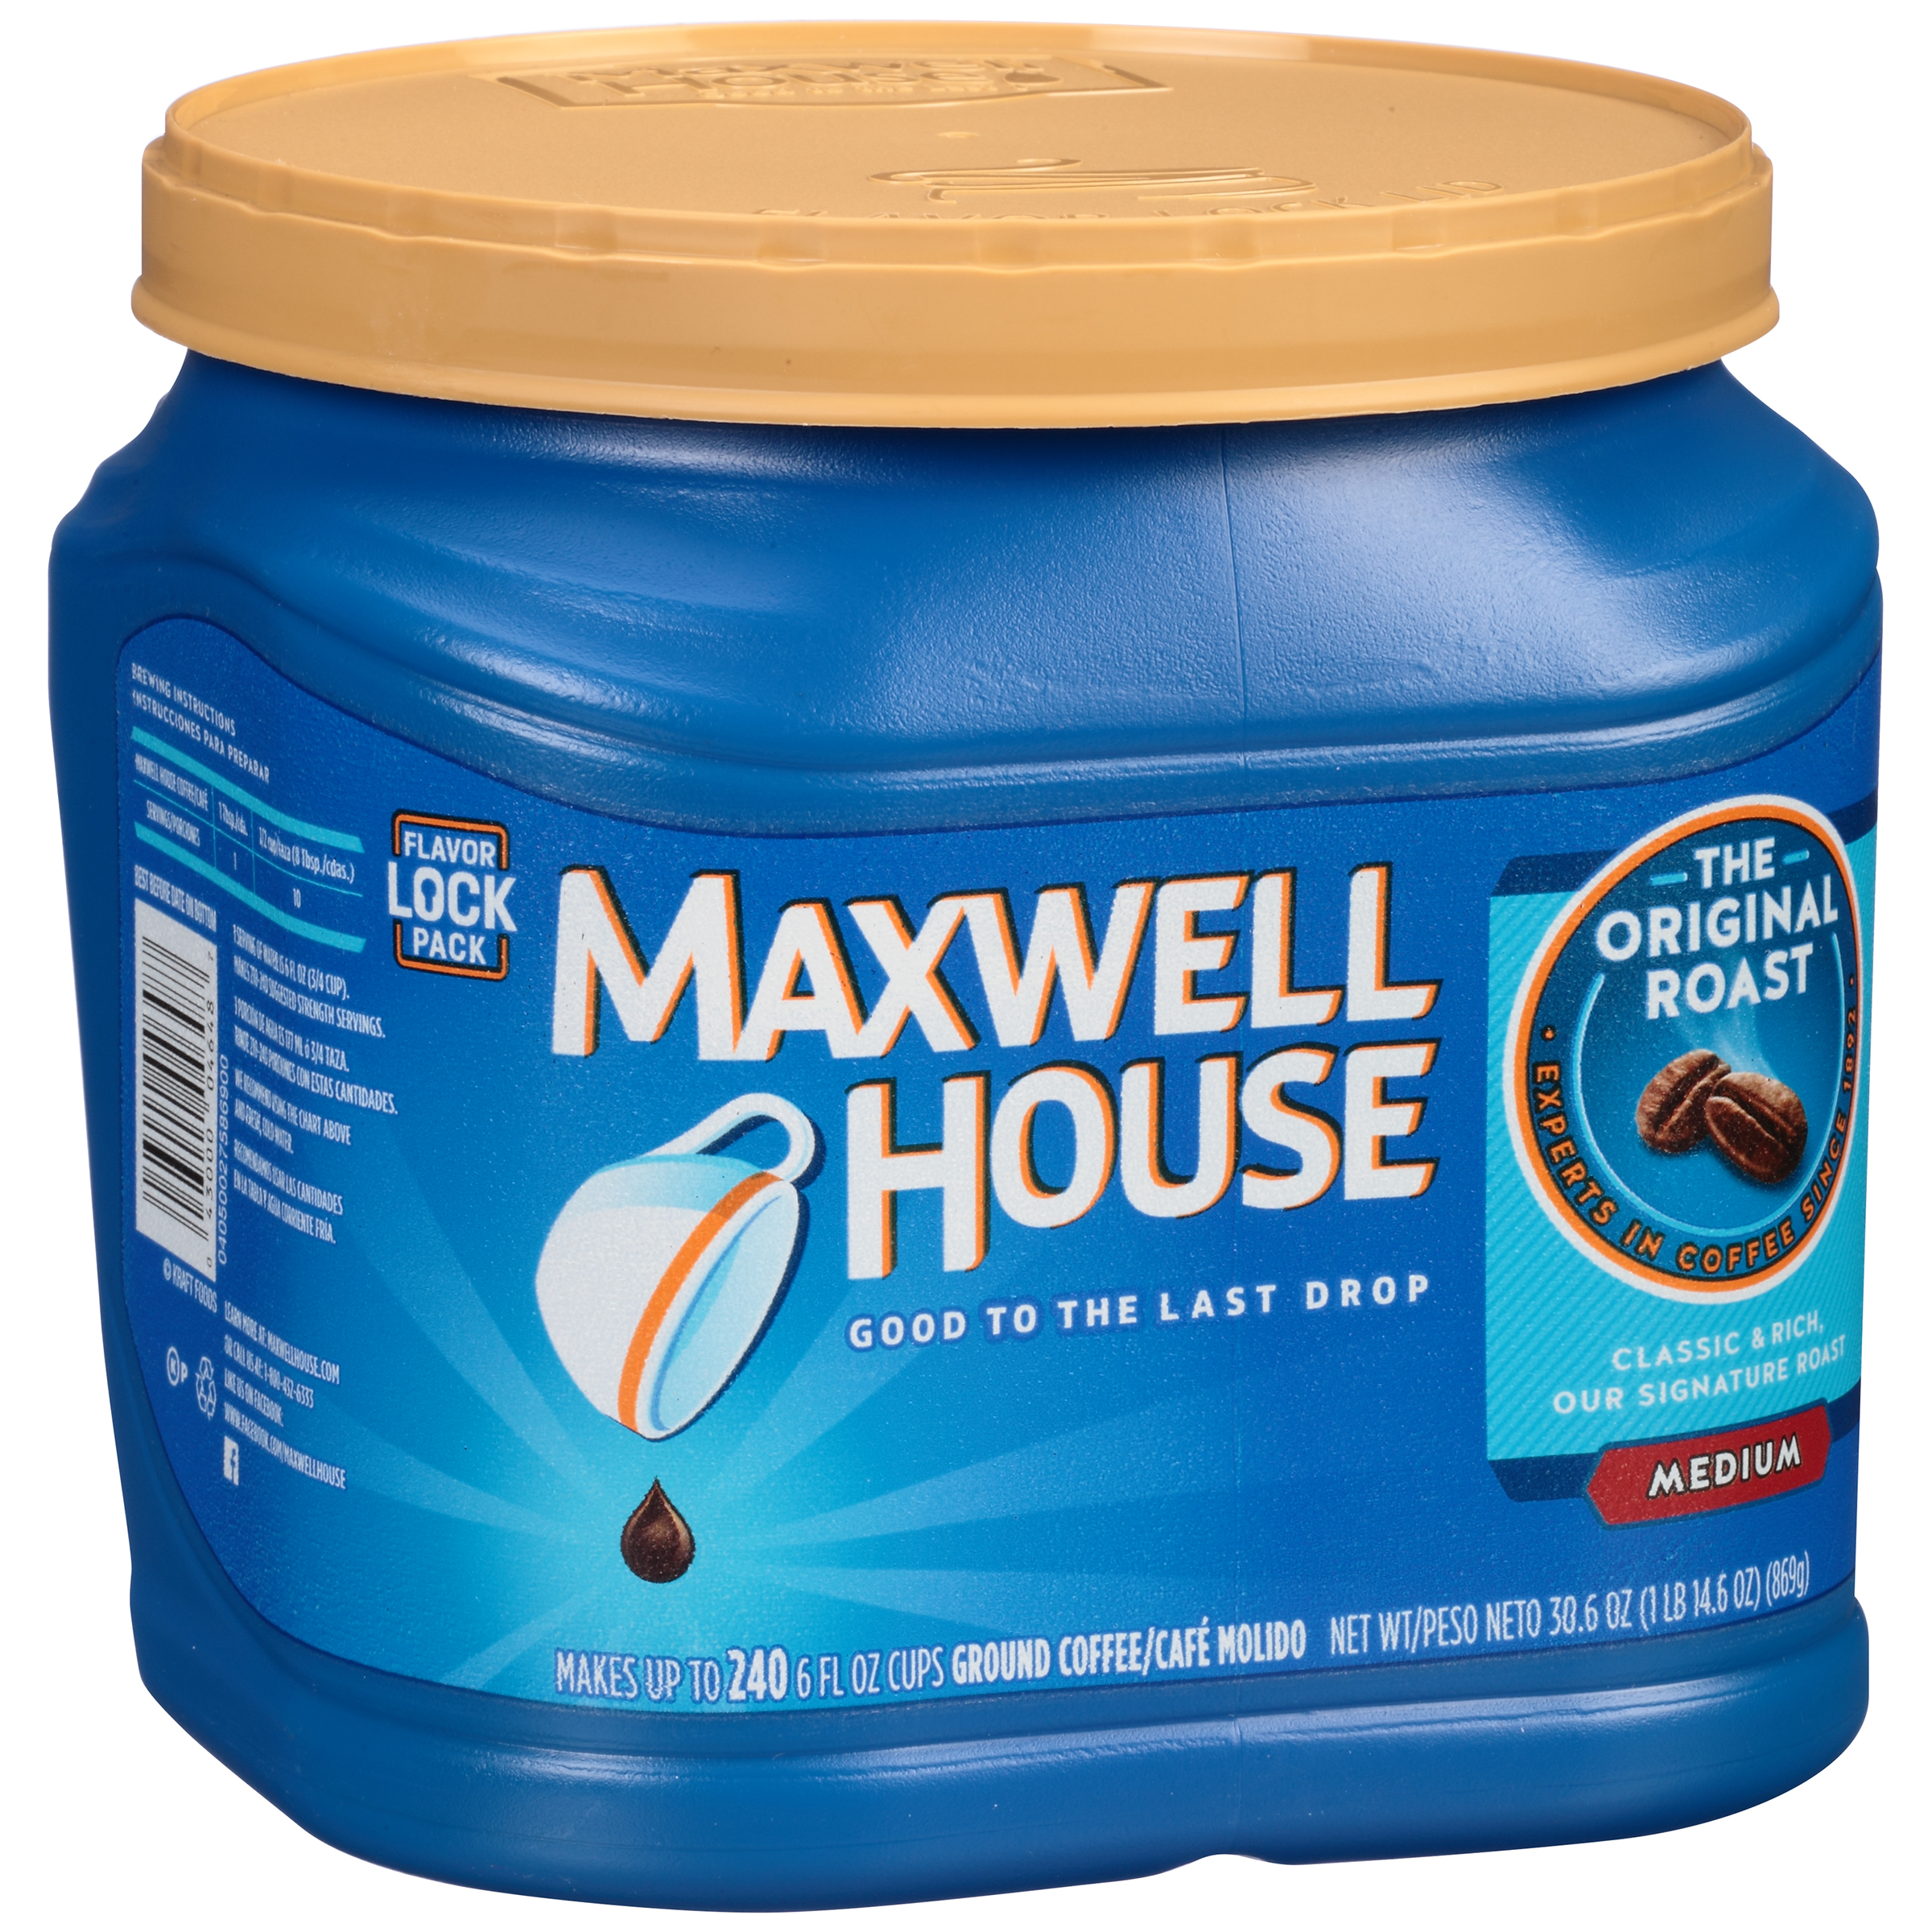 Maxwell House Original Roast Medium Ground Coffee, 30.6 oz